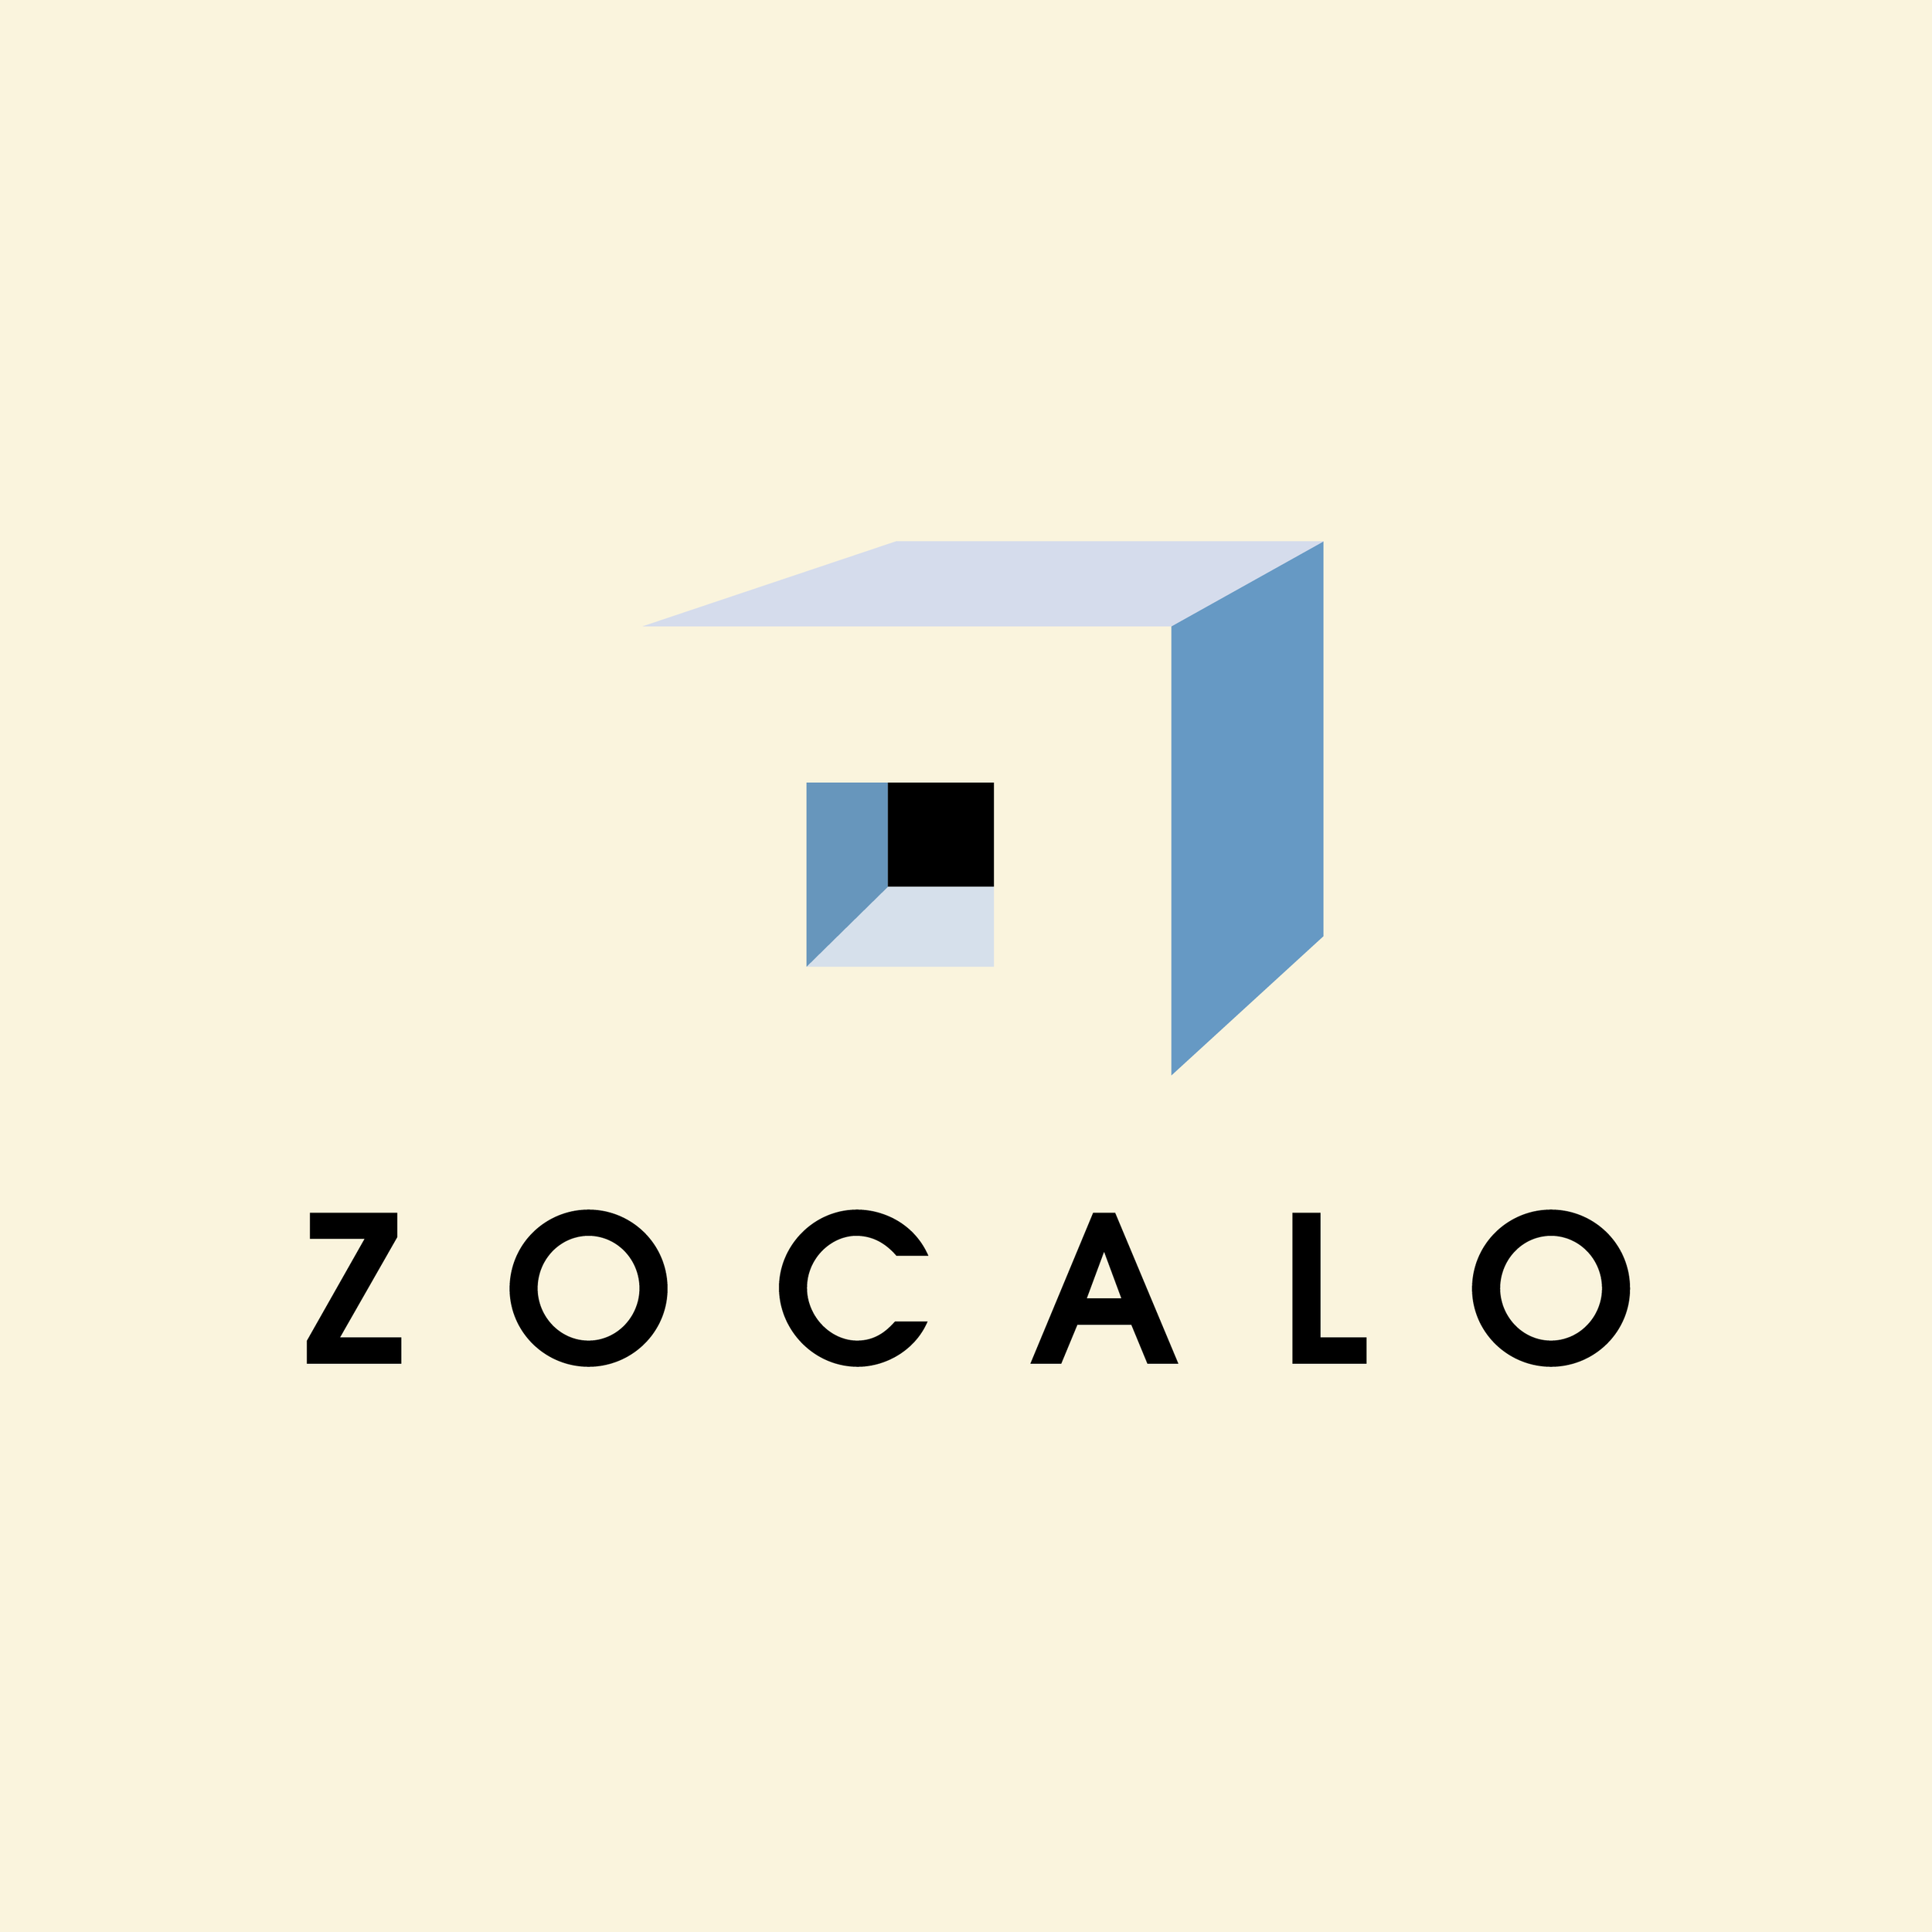 zocalo.png